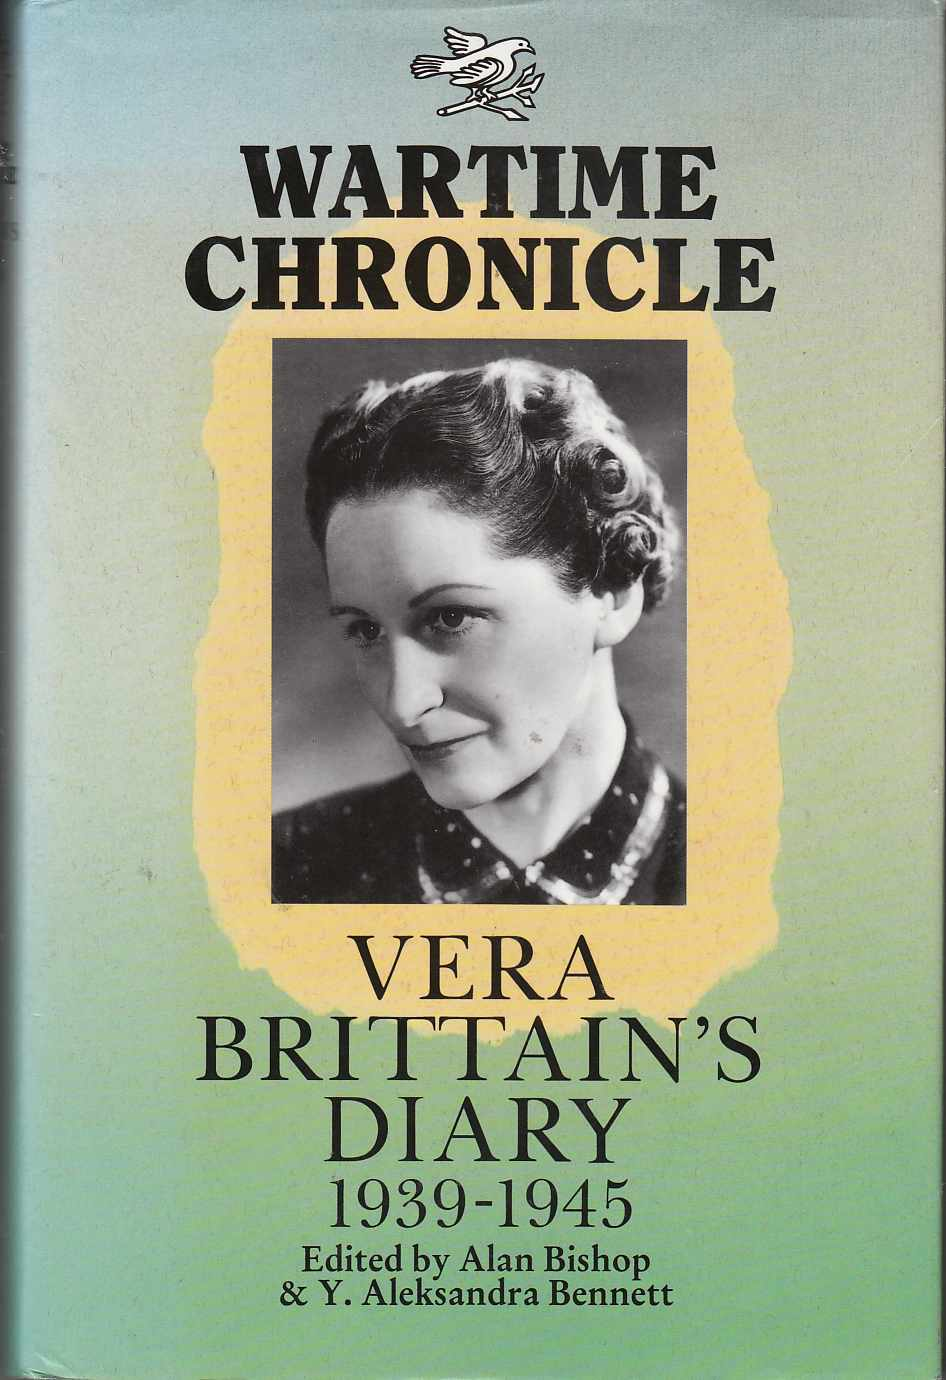 Image for Wartime Chronicle: Vera Brittain's Diary 1939-1945